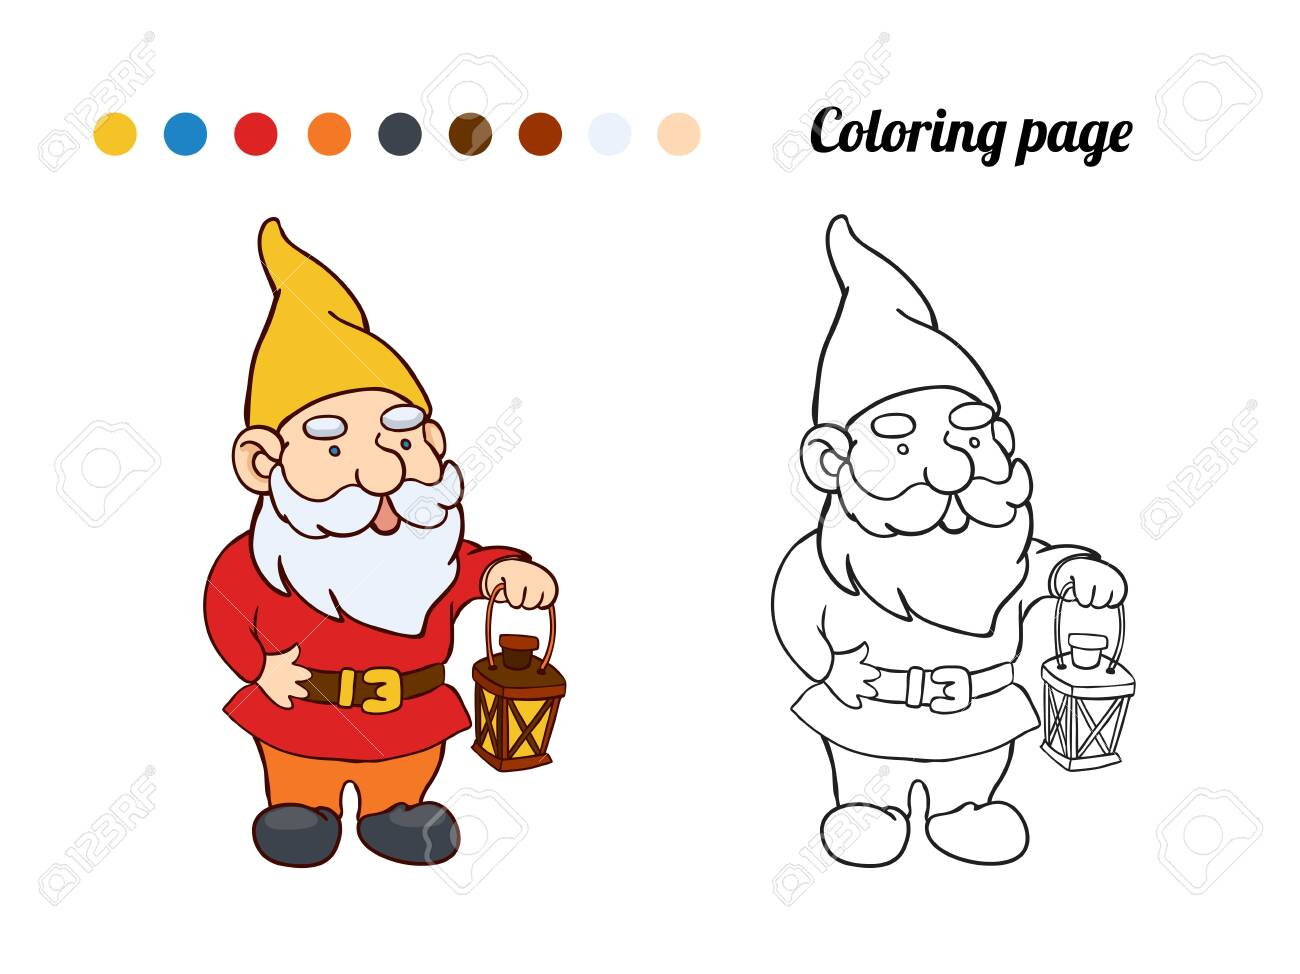 Illustration Of Cute Garden Gnome Coloring Page Or Book For Royalty Free Cliparts Vectors And Stock Illustration Image 136781922